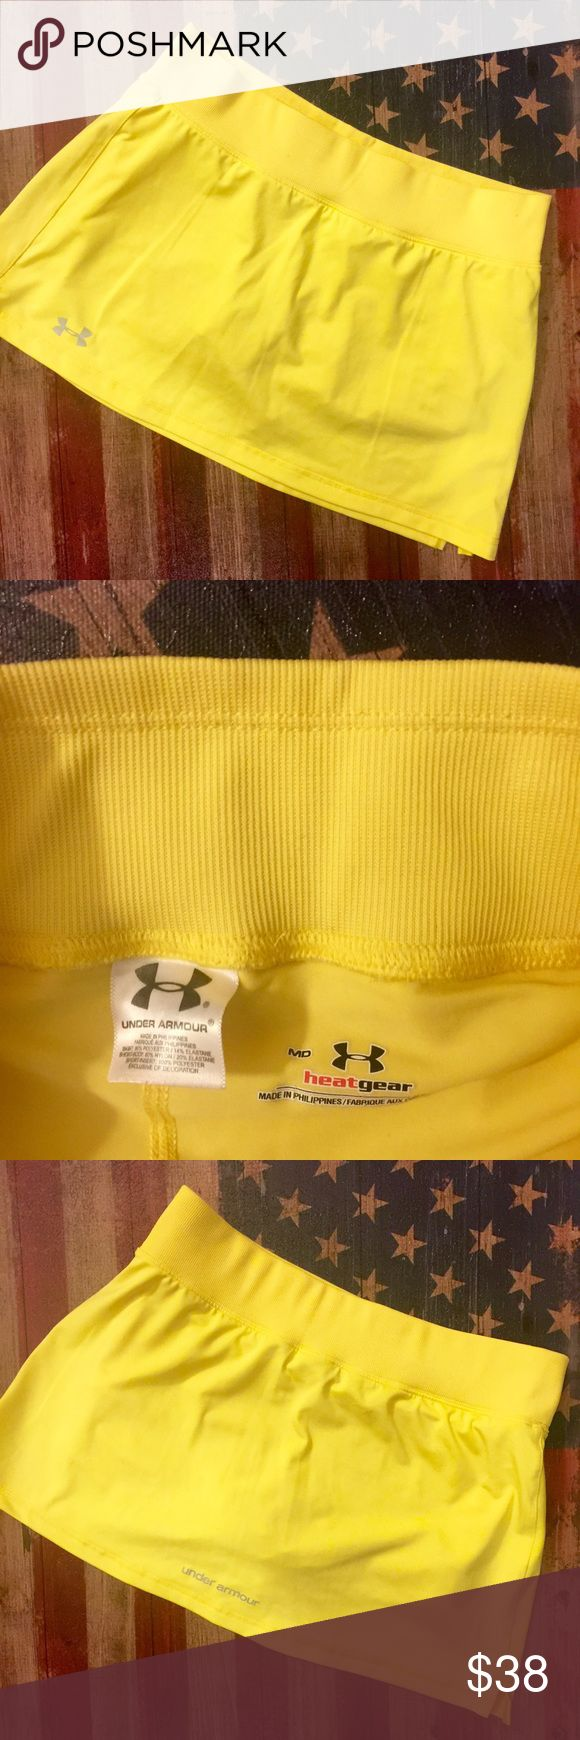 Under armor tennis skirt Adorable yellow under armor golf/tennis skirt. Worn only a handful of times. Super flattering on, shirts underneath Under Armour Skirts Mini